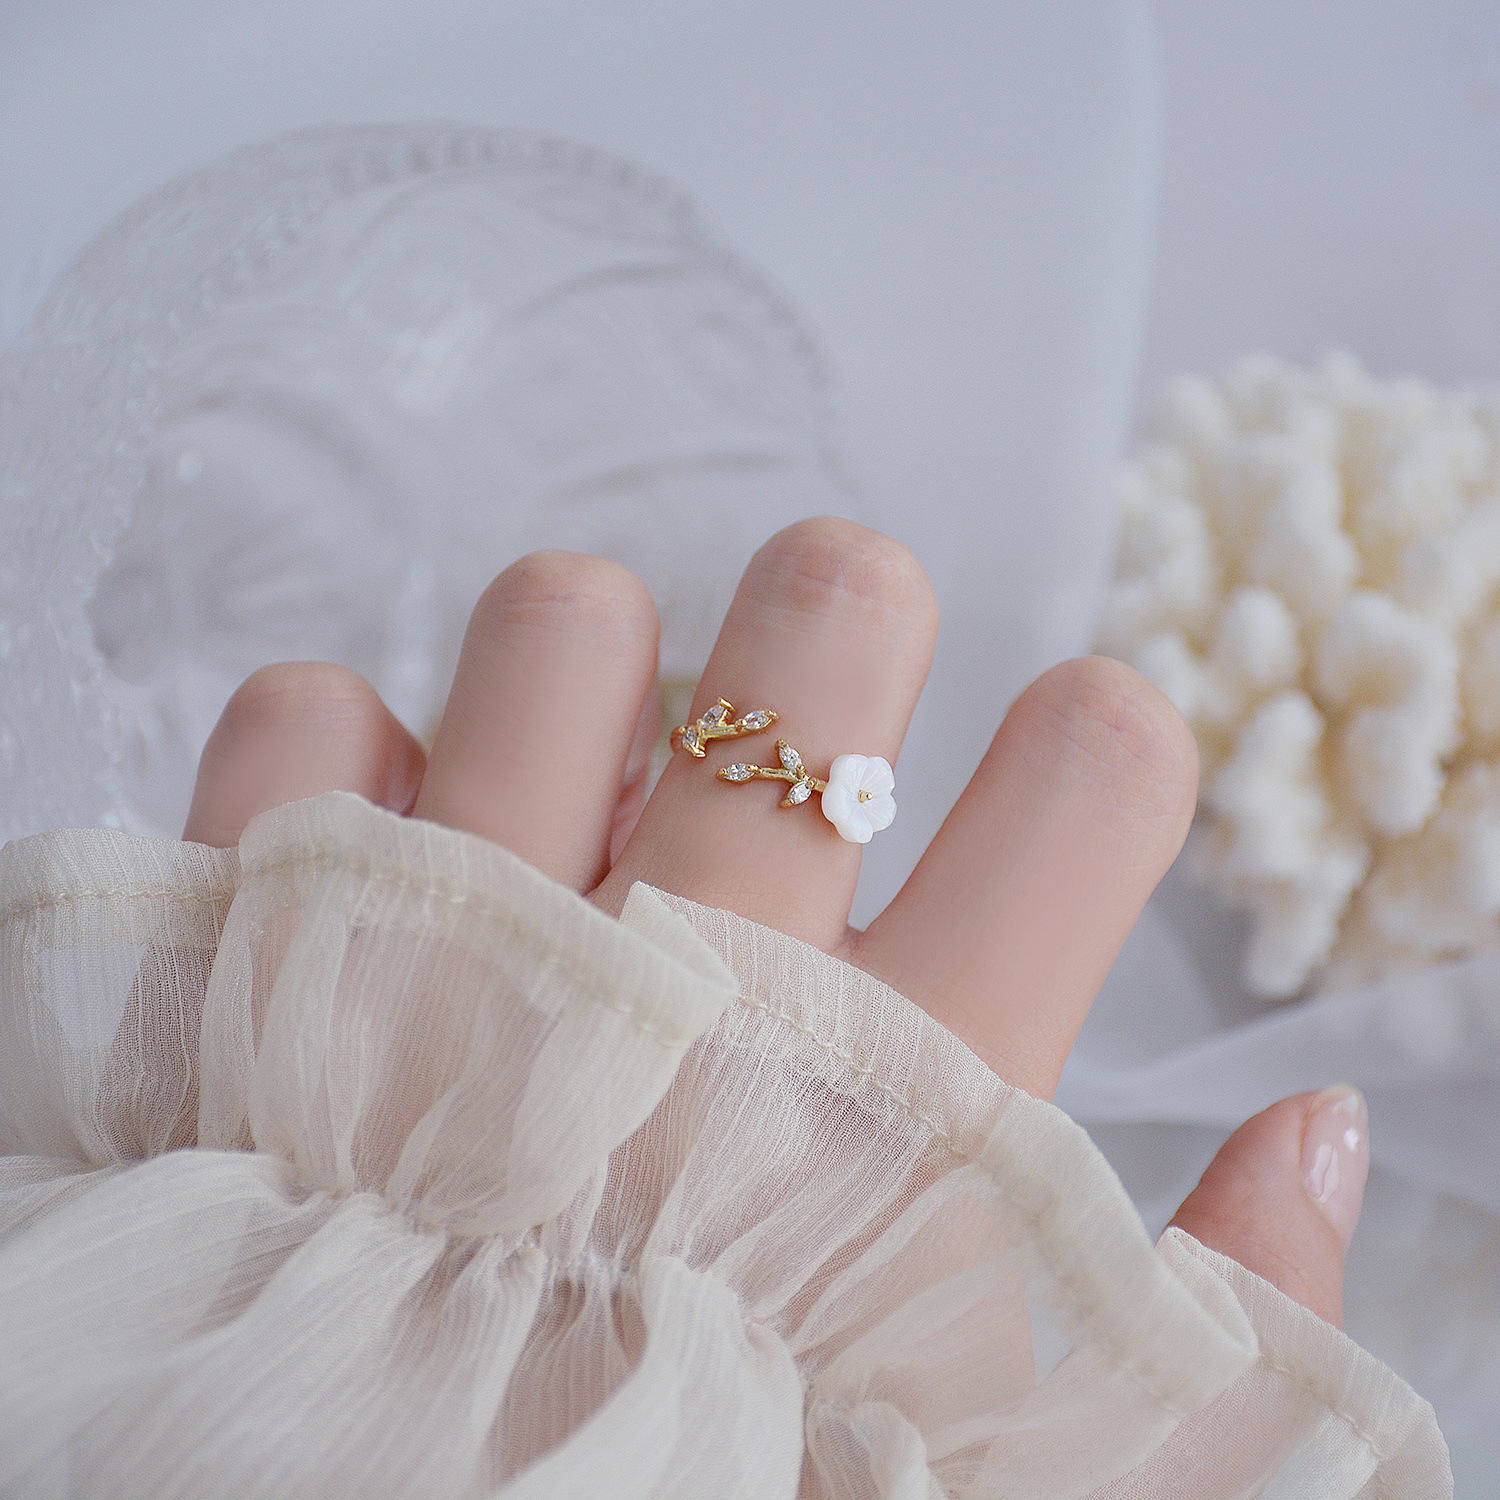 South Korea's new design fashion jewelry exquisite copper inlaid zircon leaf shell flower open female ring